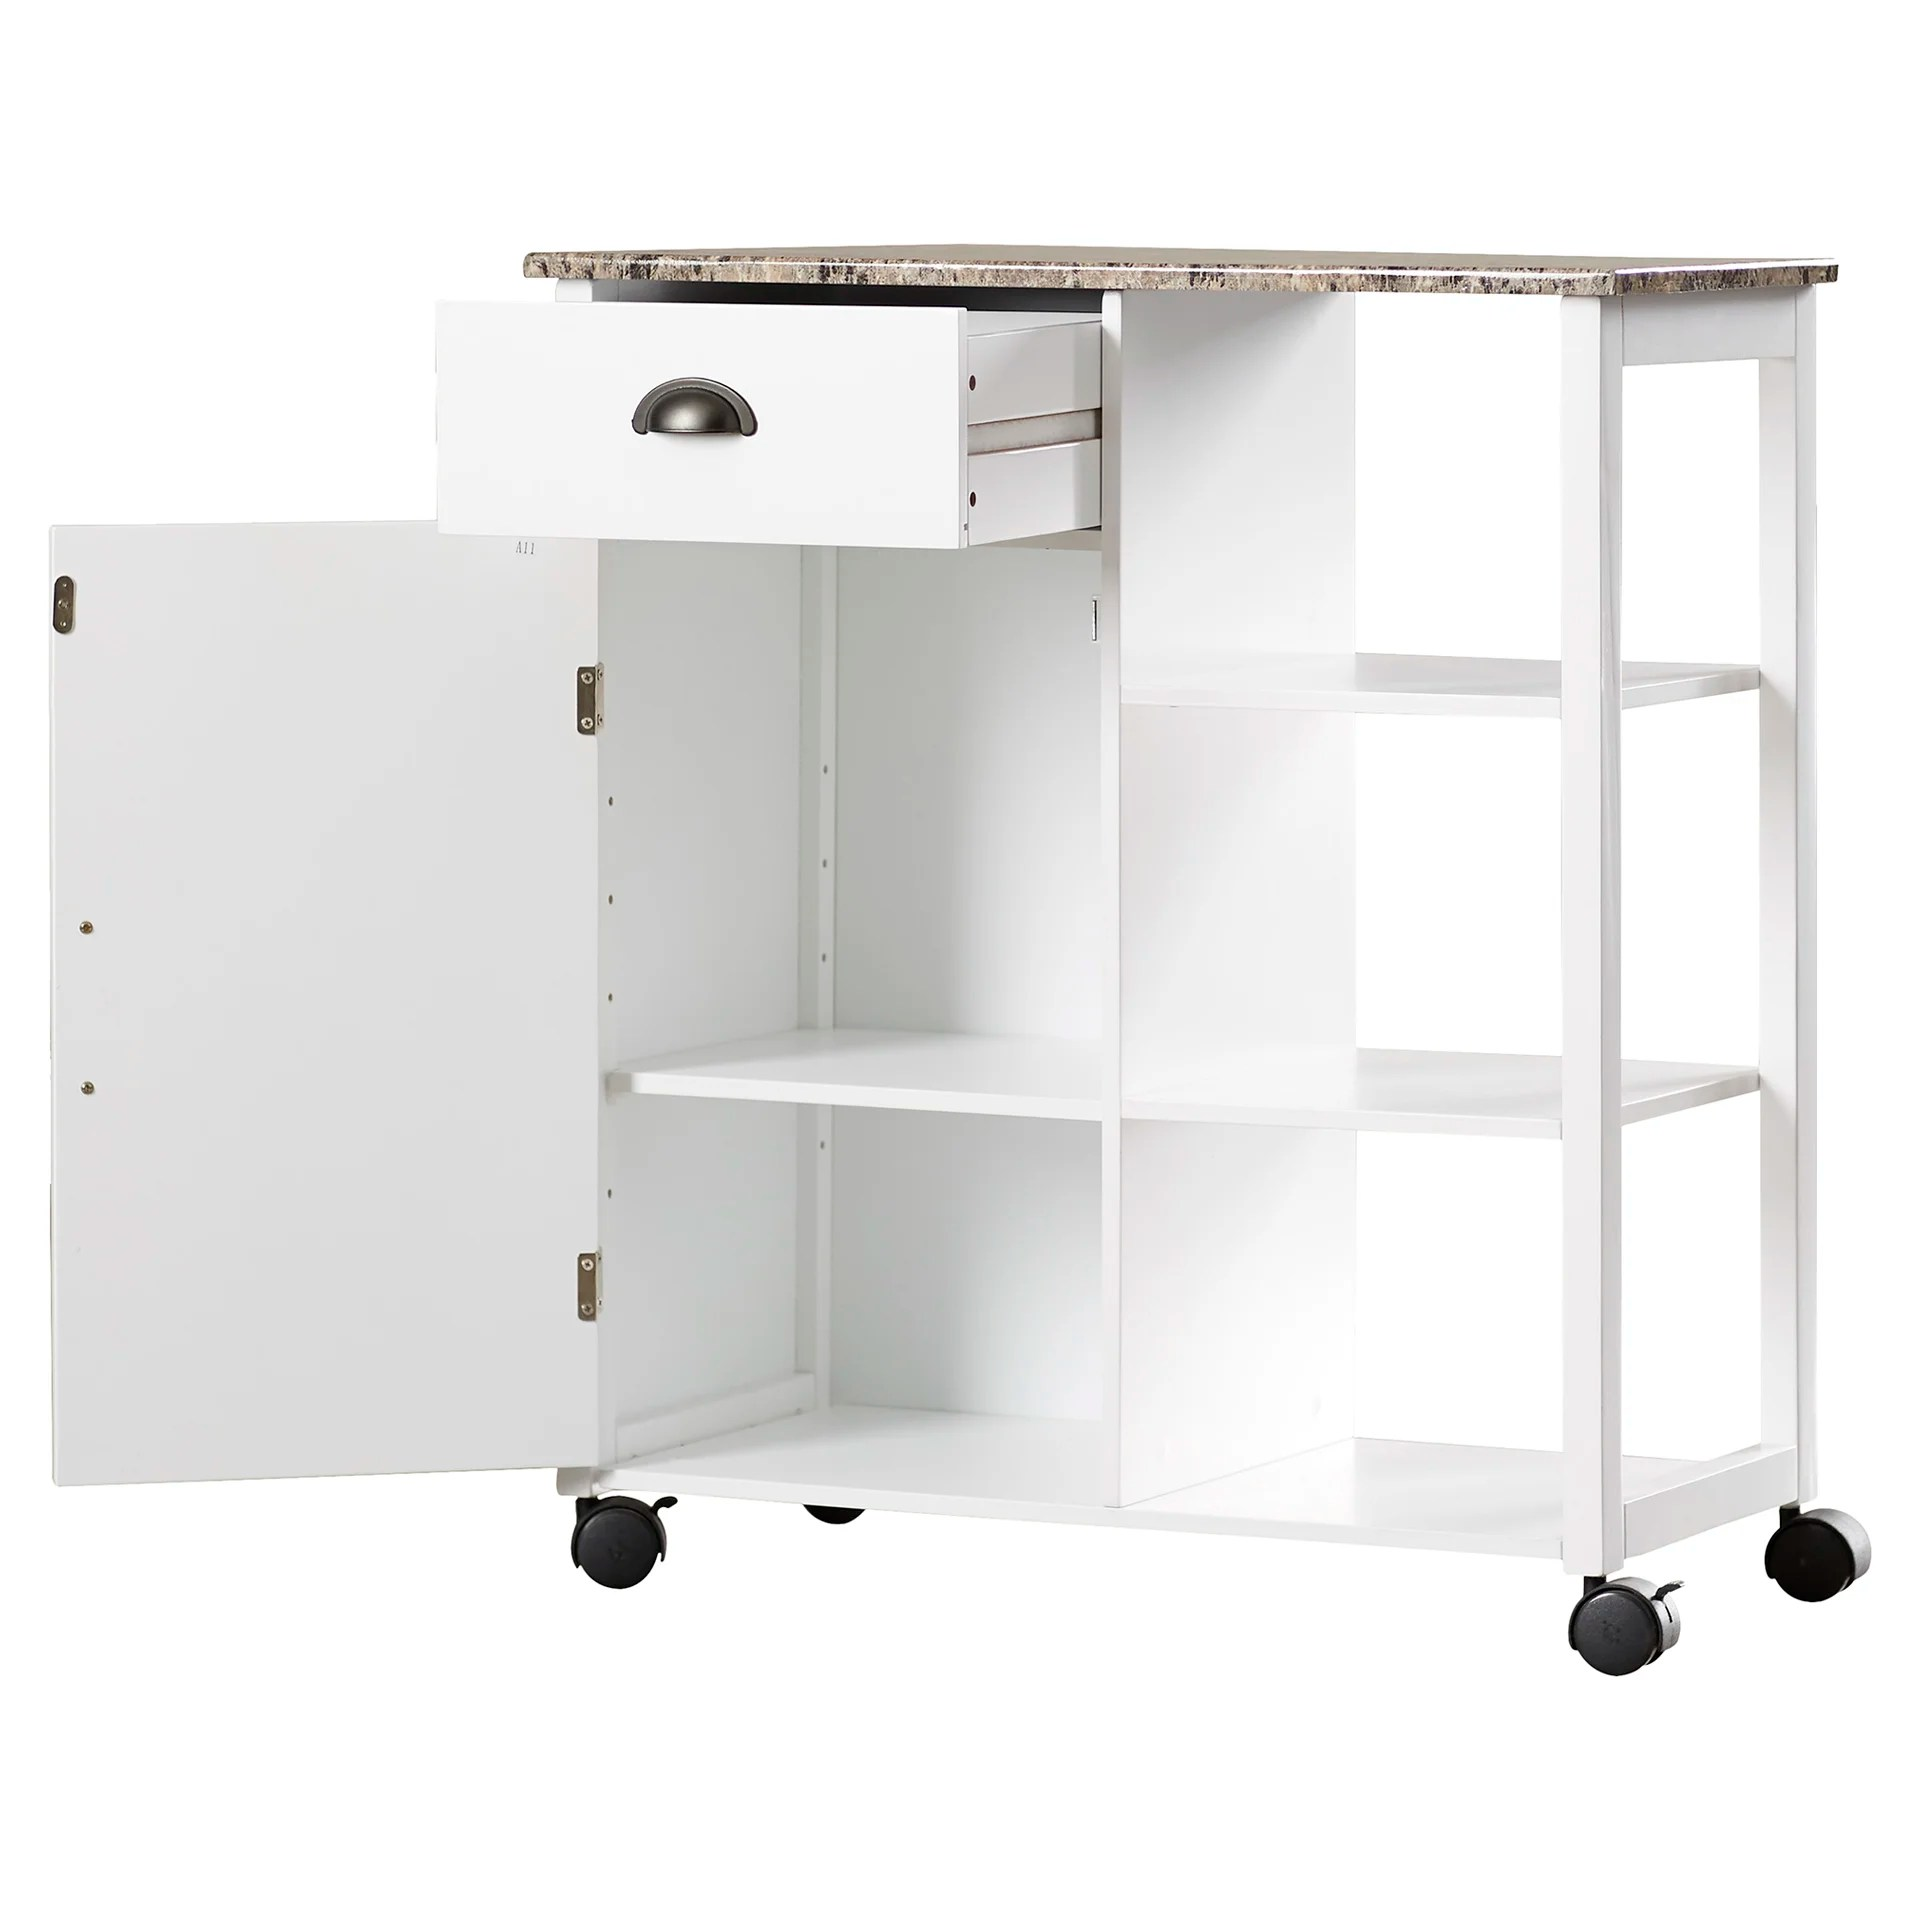 marble top kitchen cart exhaust hood cleaning certification andover mills irma with and reviews